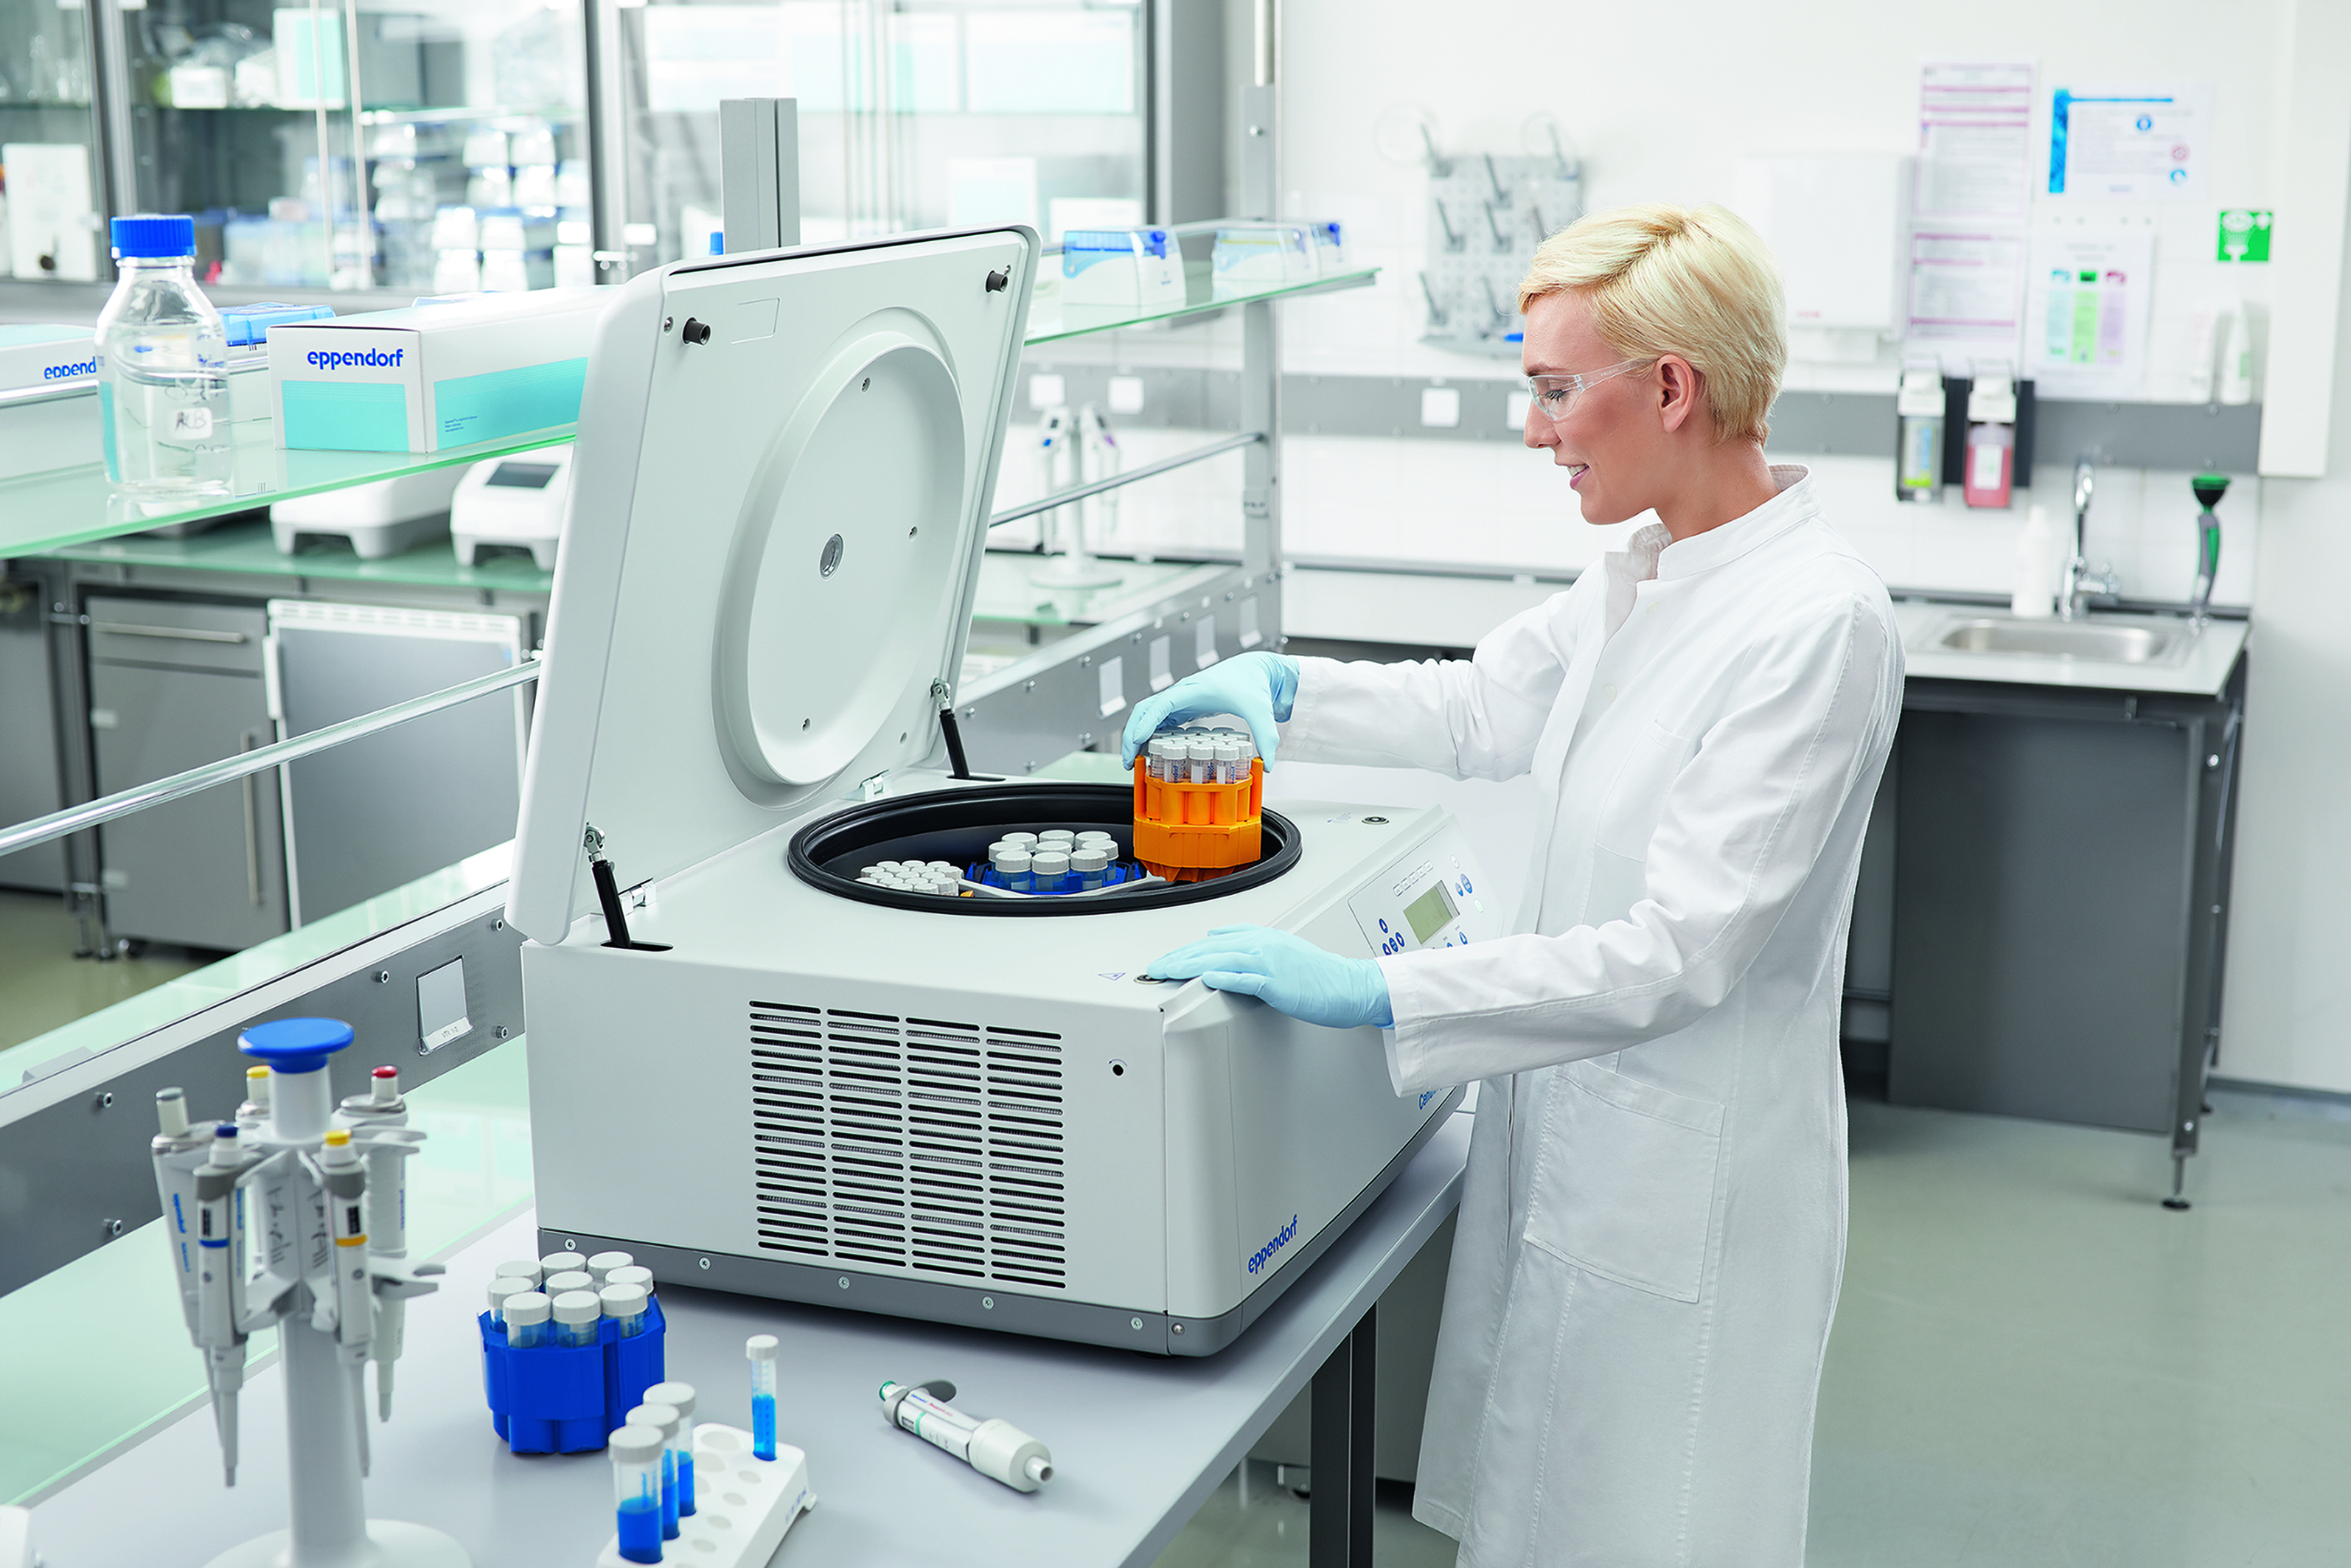 Eppendorf – A New Spin on Centrifugation